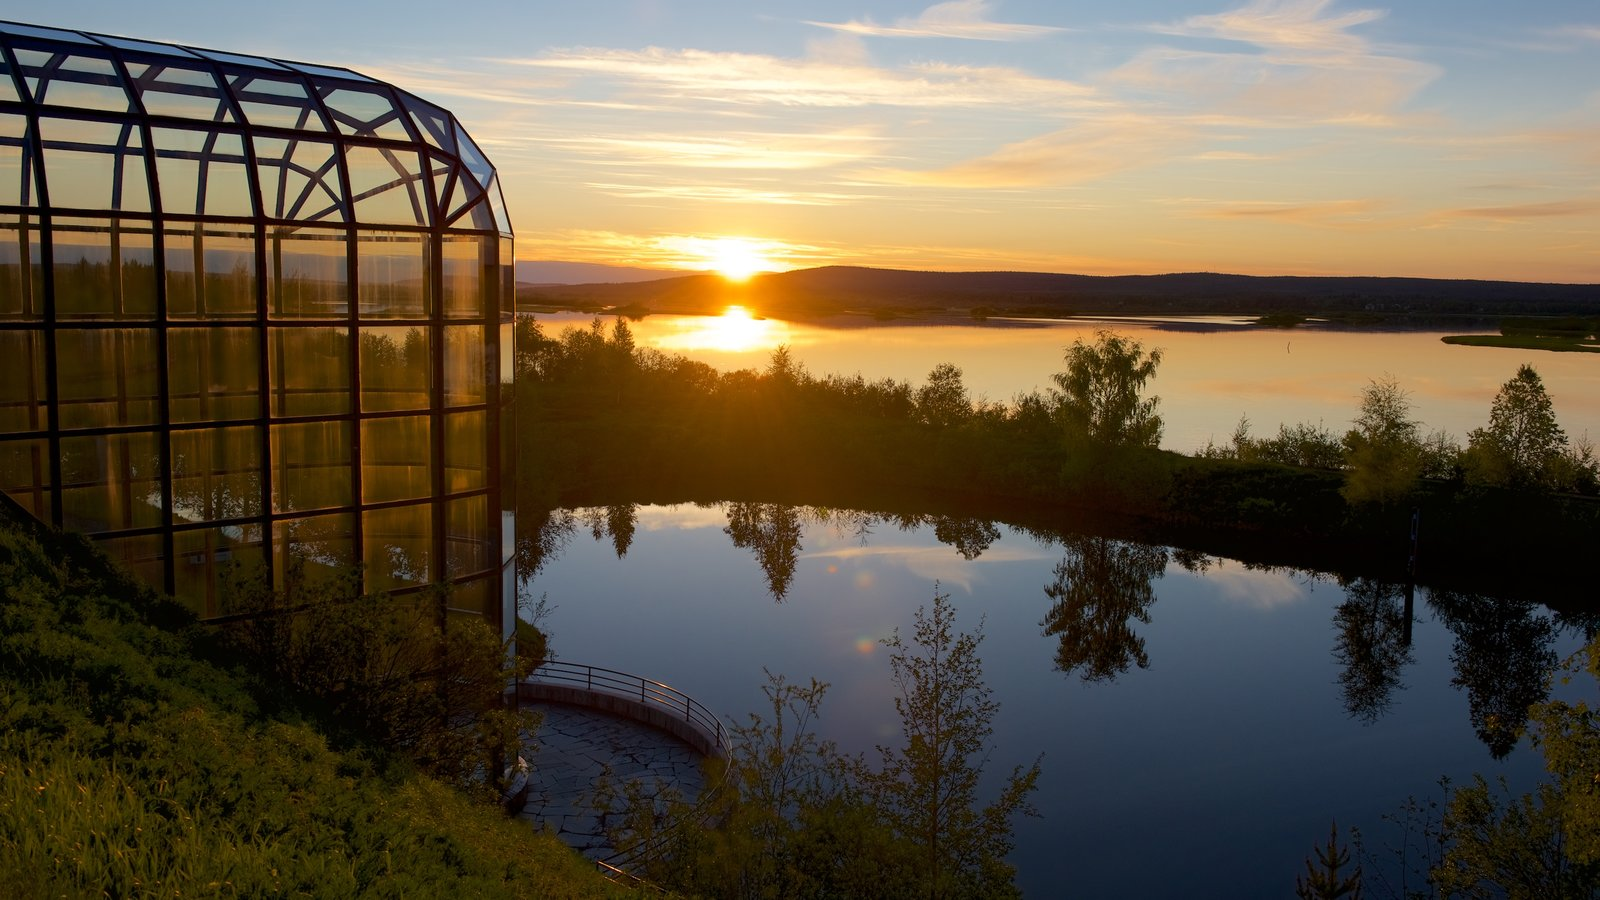 Arktikum featuring a pond, tranquil scenes and landscape views